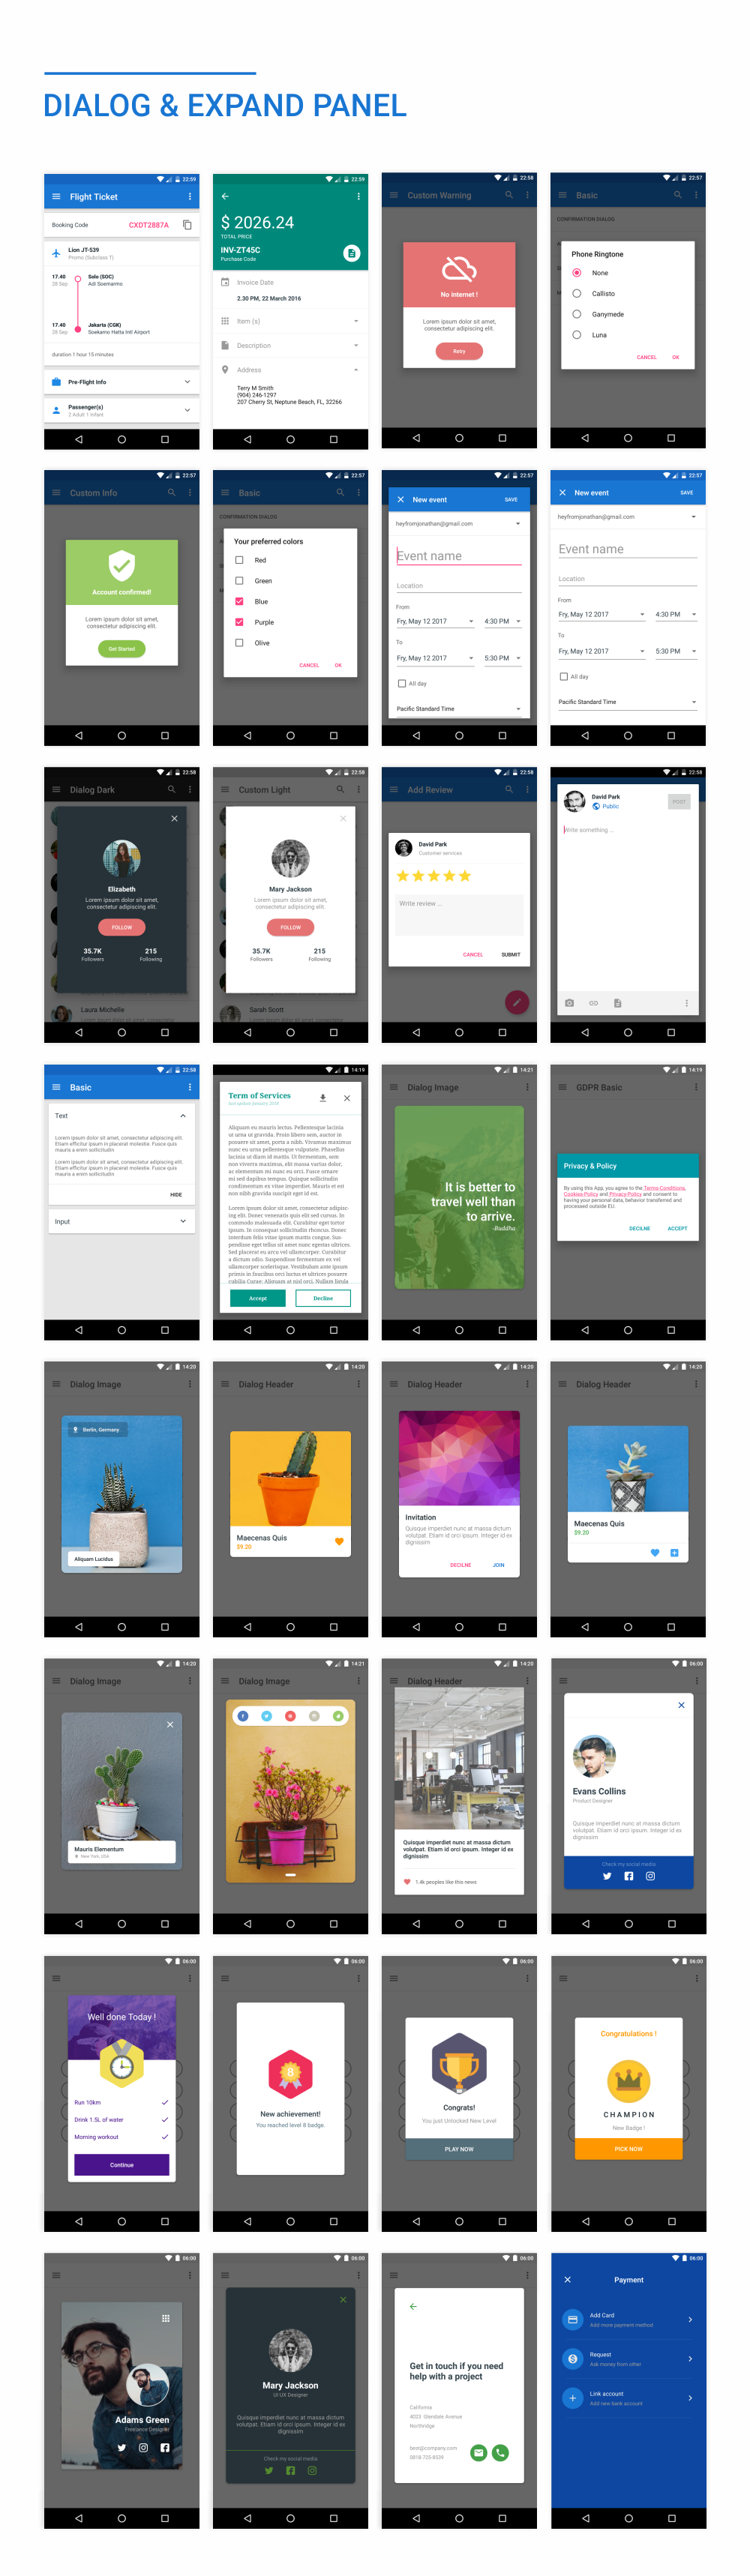 MaterialX - Android Material Design UI Components 2.4 - 36